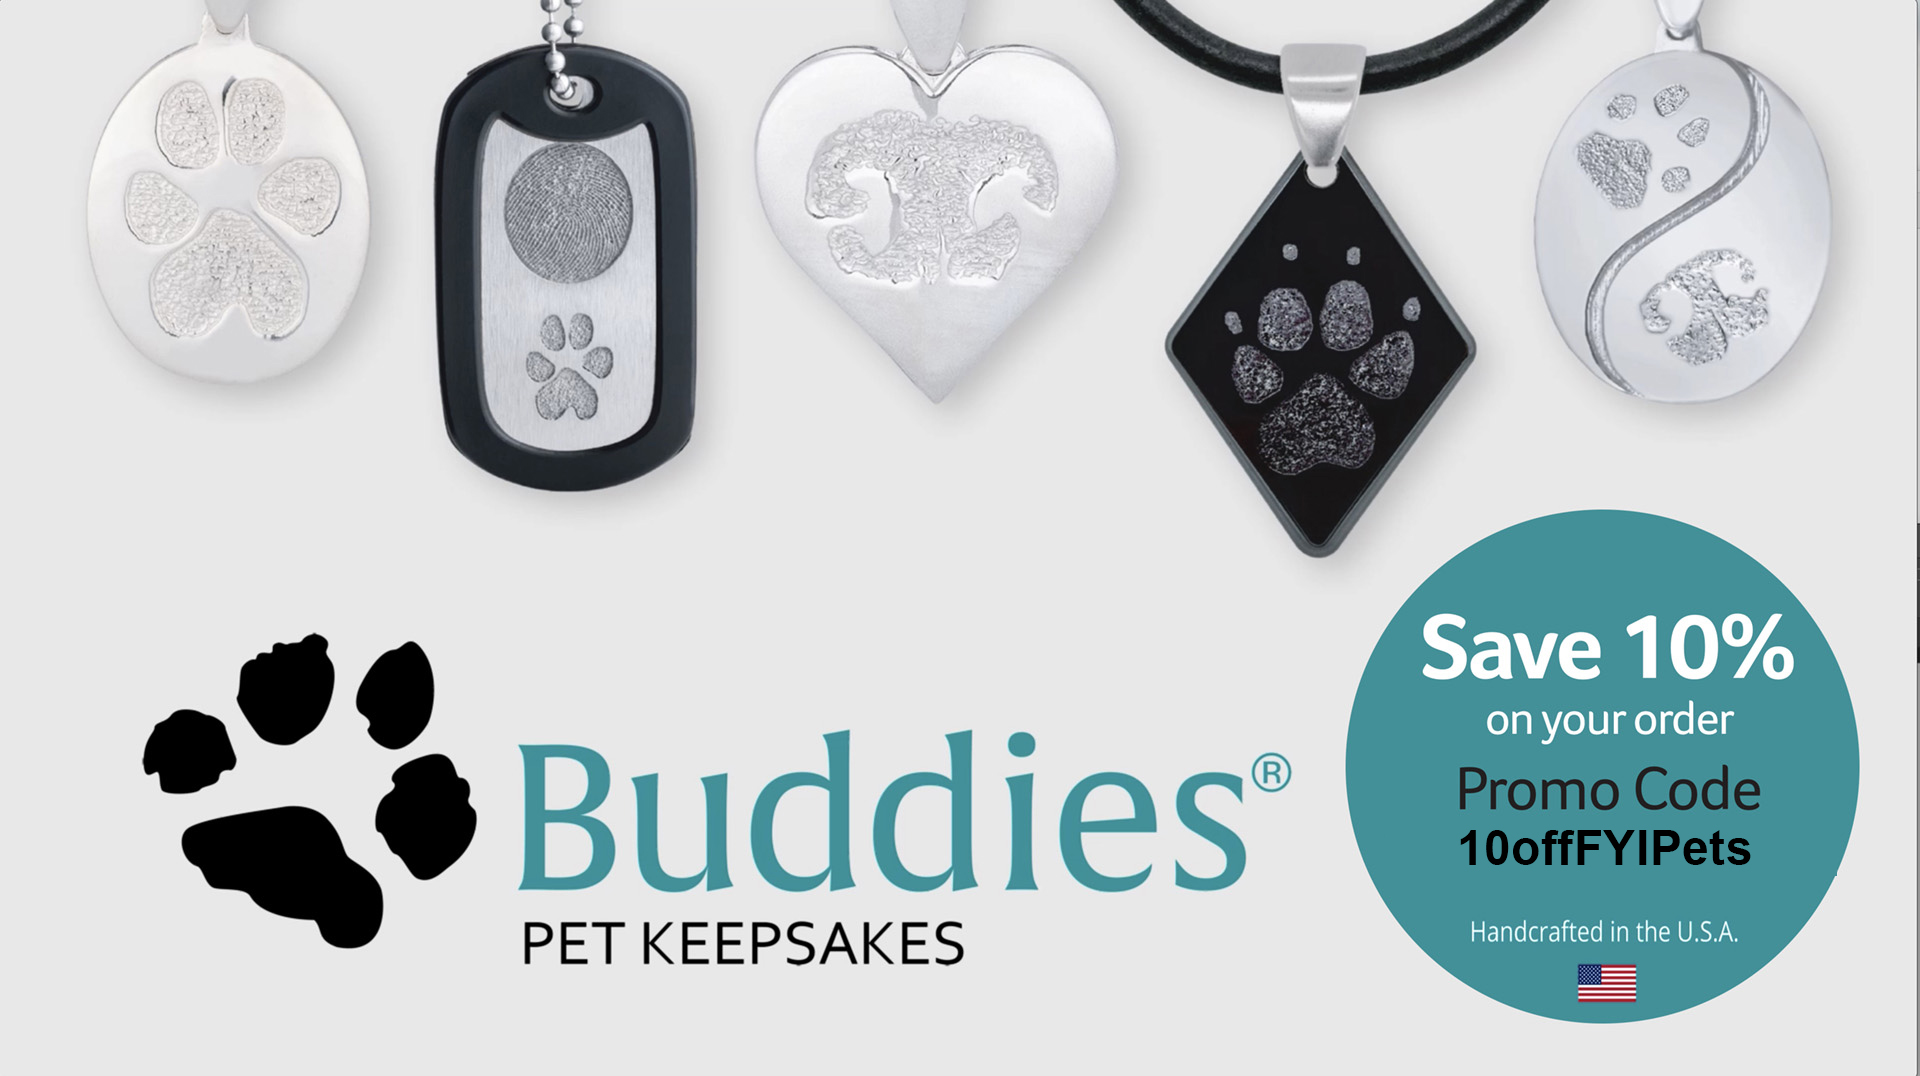 When Your BFF Is Furry: Celebrate Your Pet with Customizable Buddies™ Keepsakes Featuring a Nose, Paw or Claw